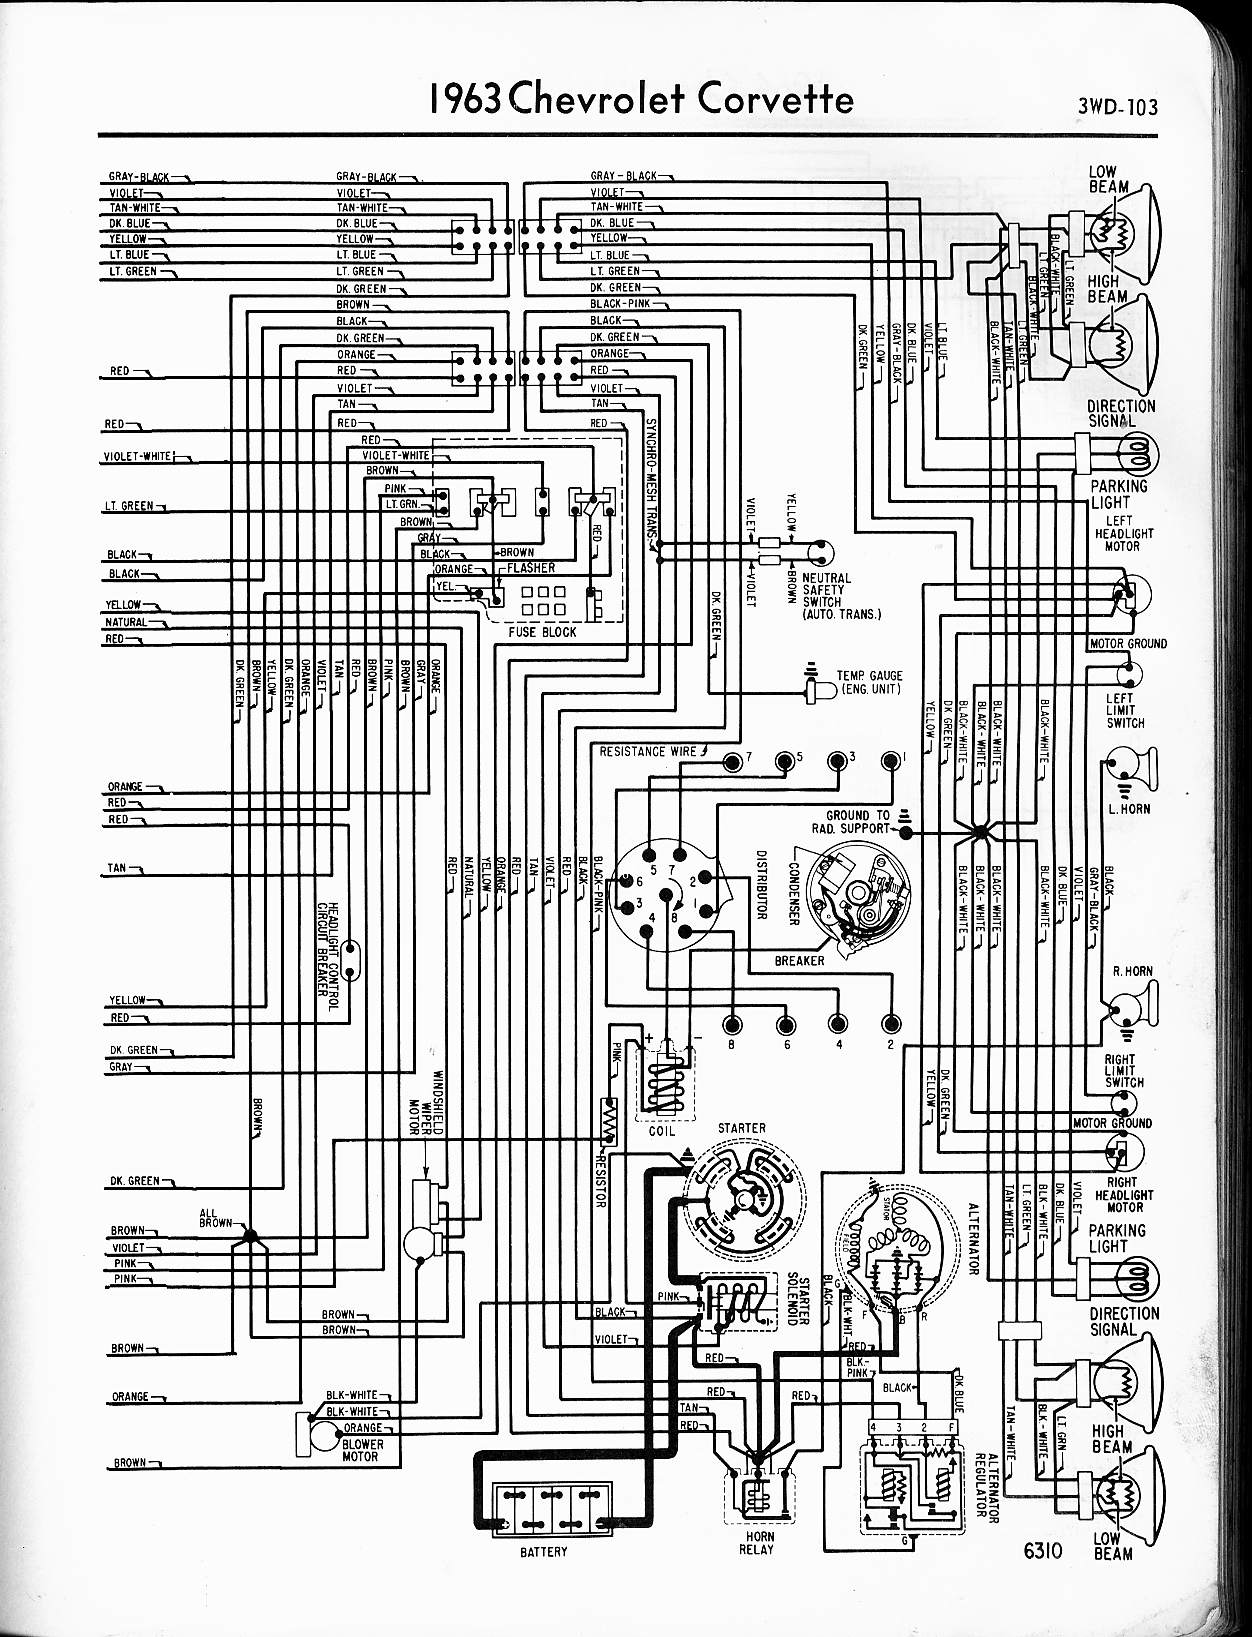 1963 gmc wiring diagram wiring diagram will be a thing u2022 rh  exploreandmore co uk 1973 GMC Pickup 1973 GMC Pickup